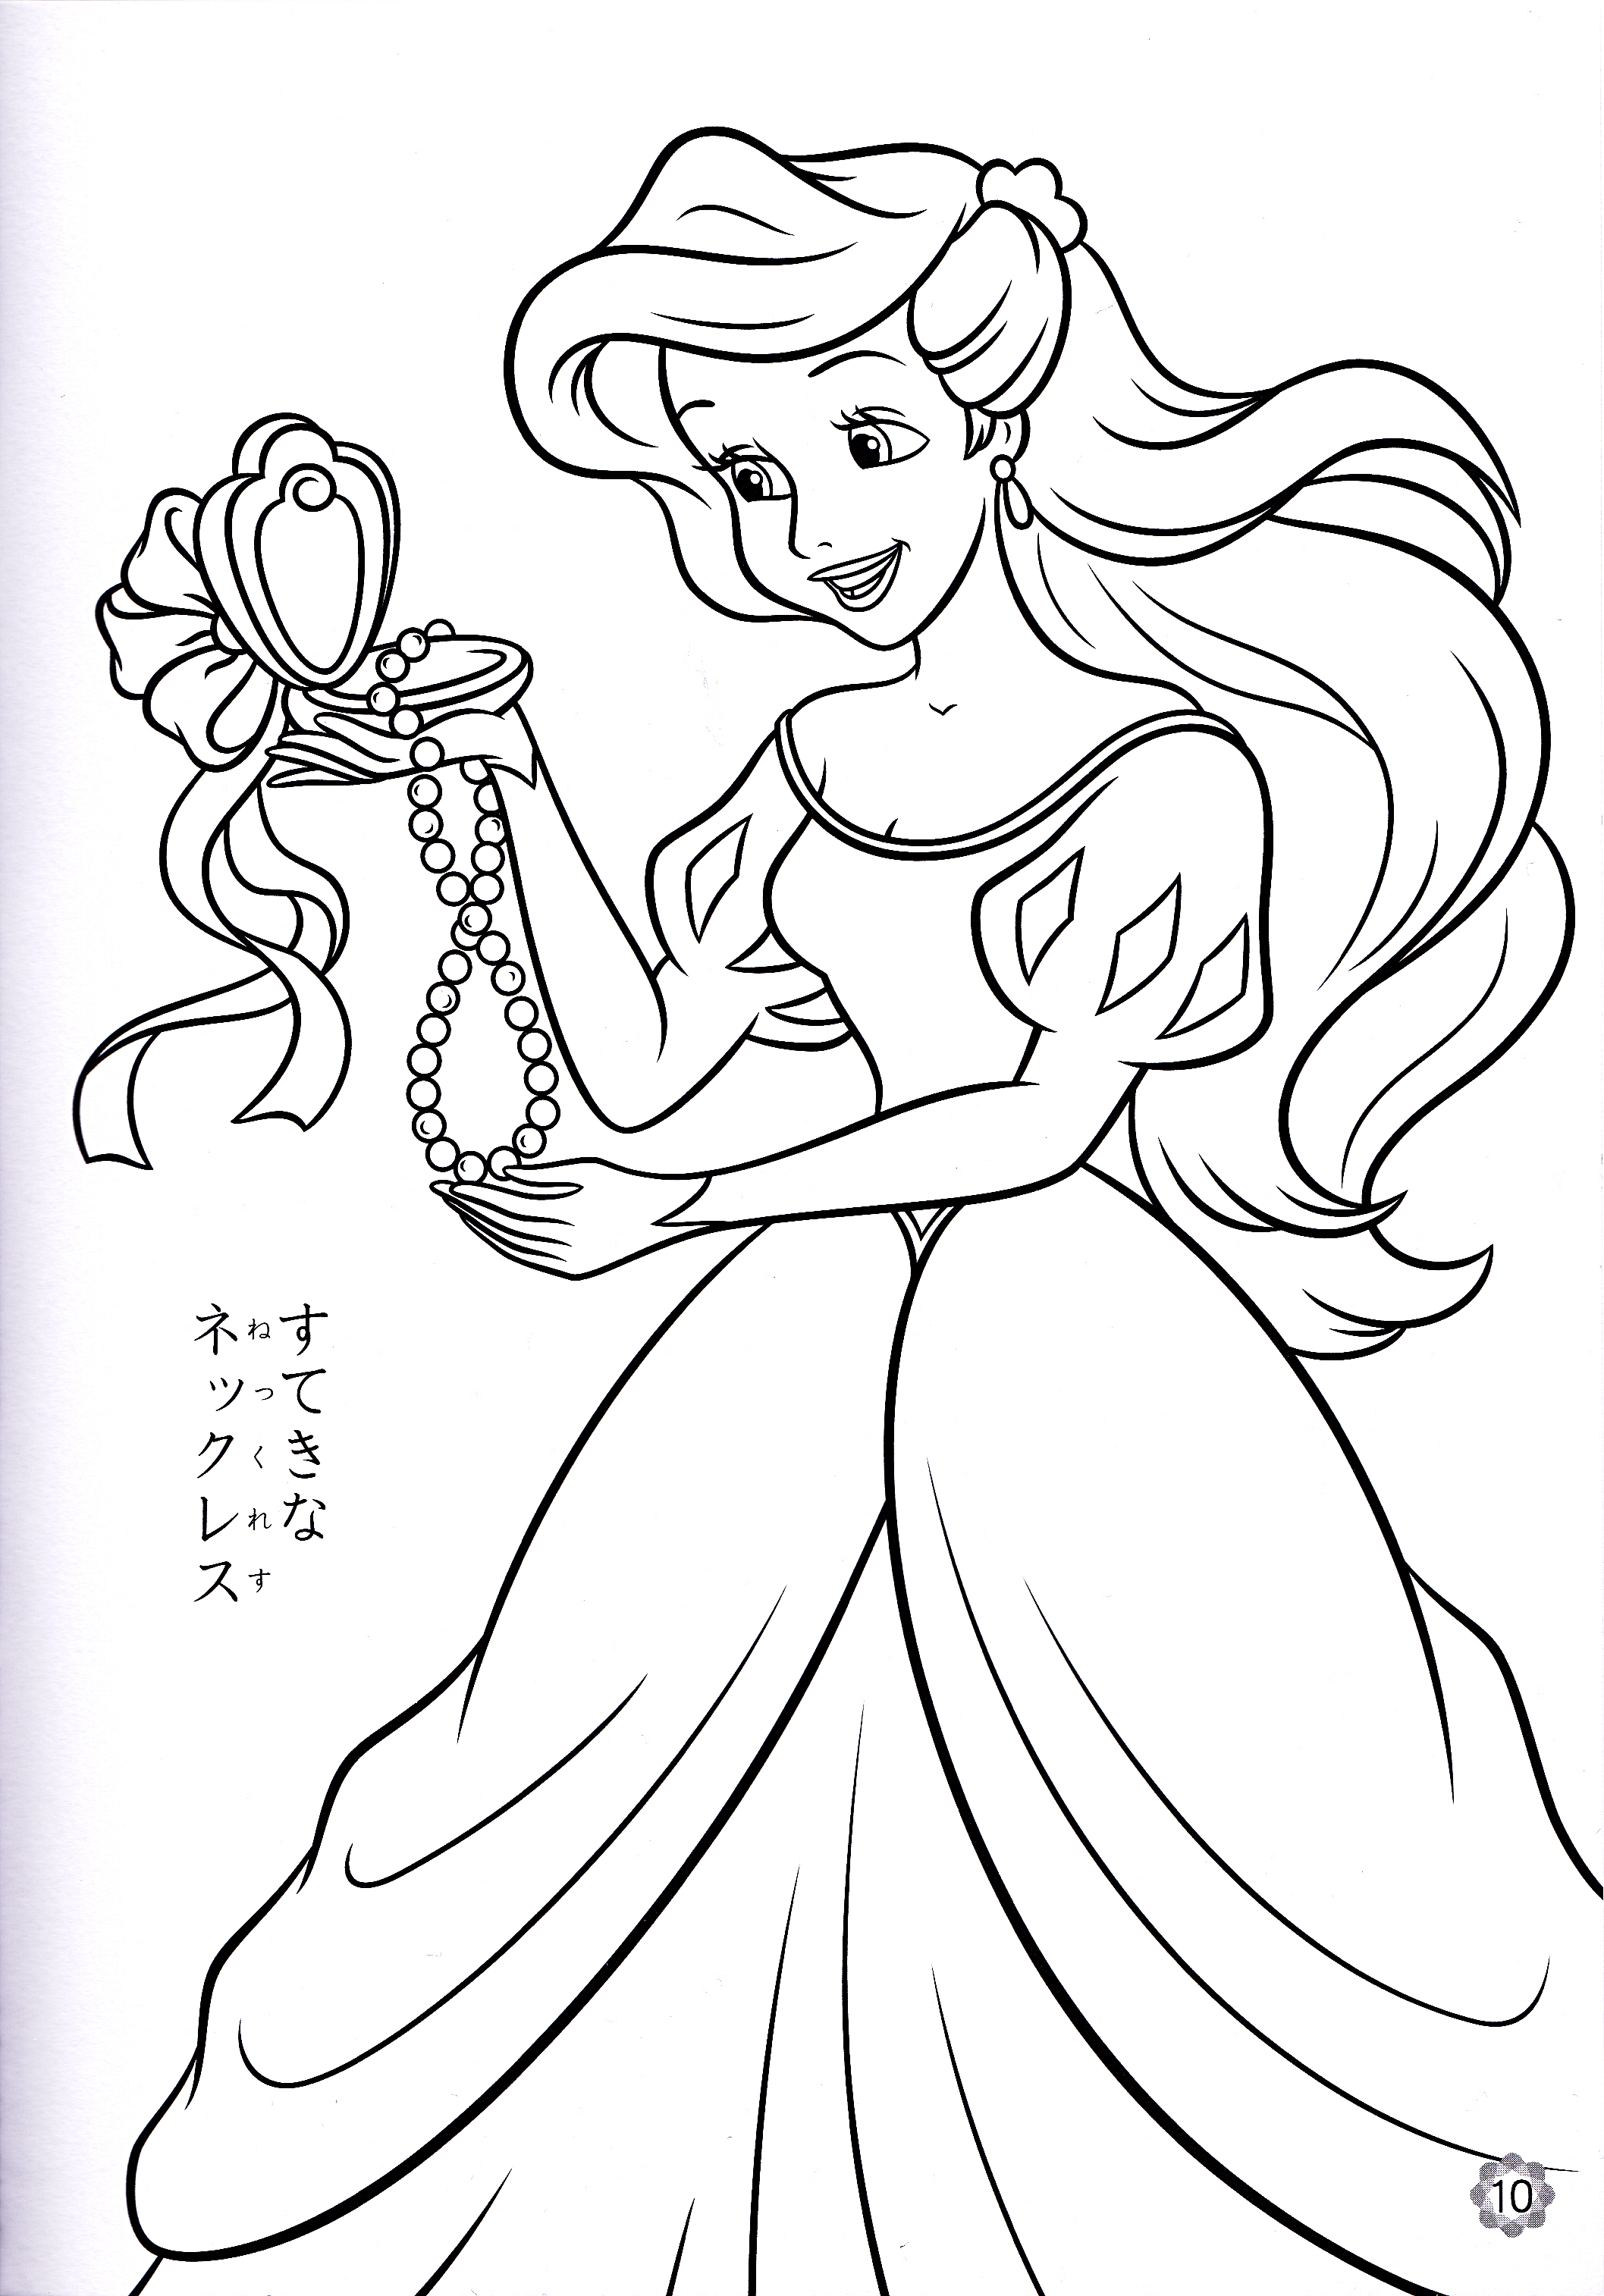 princess disney coloring pages - Coloring Pages Princess